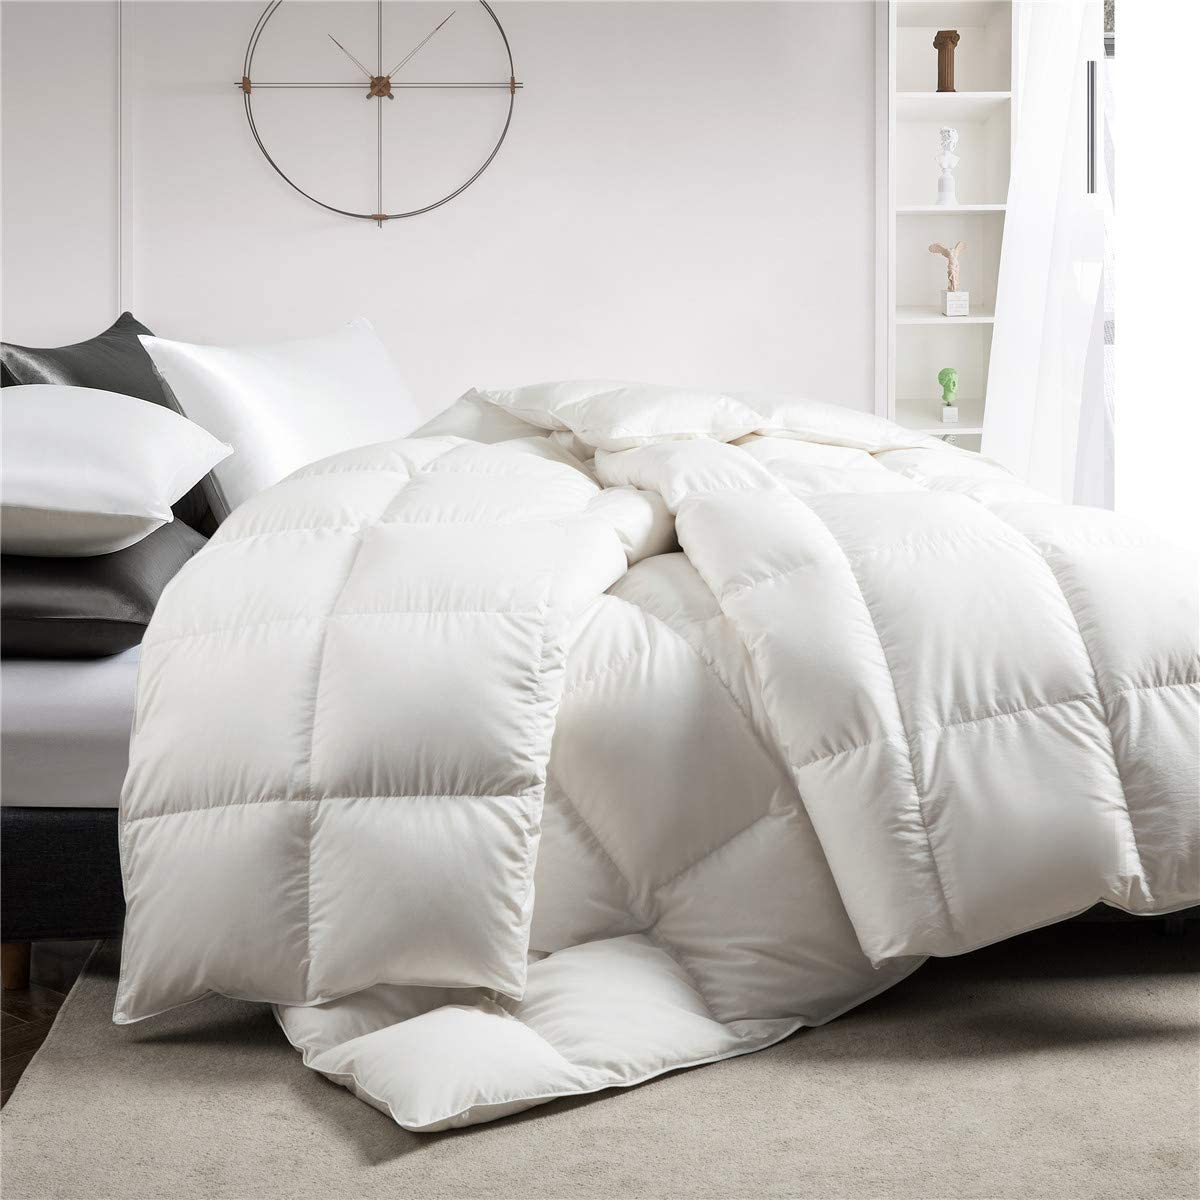 Puredown White Down Comforter Year Round Use 100 Cotton 600 Fill Power Medium Warmth Duvet Insert Twin Size White Home Kitchen